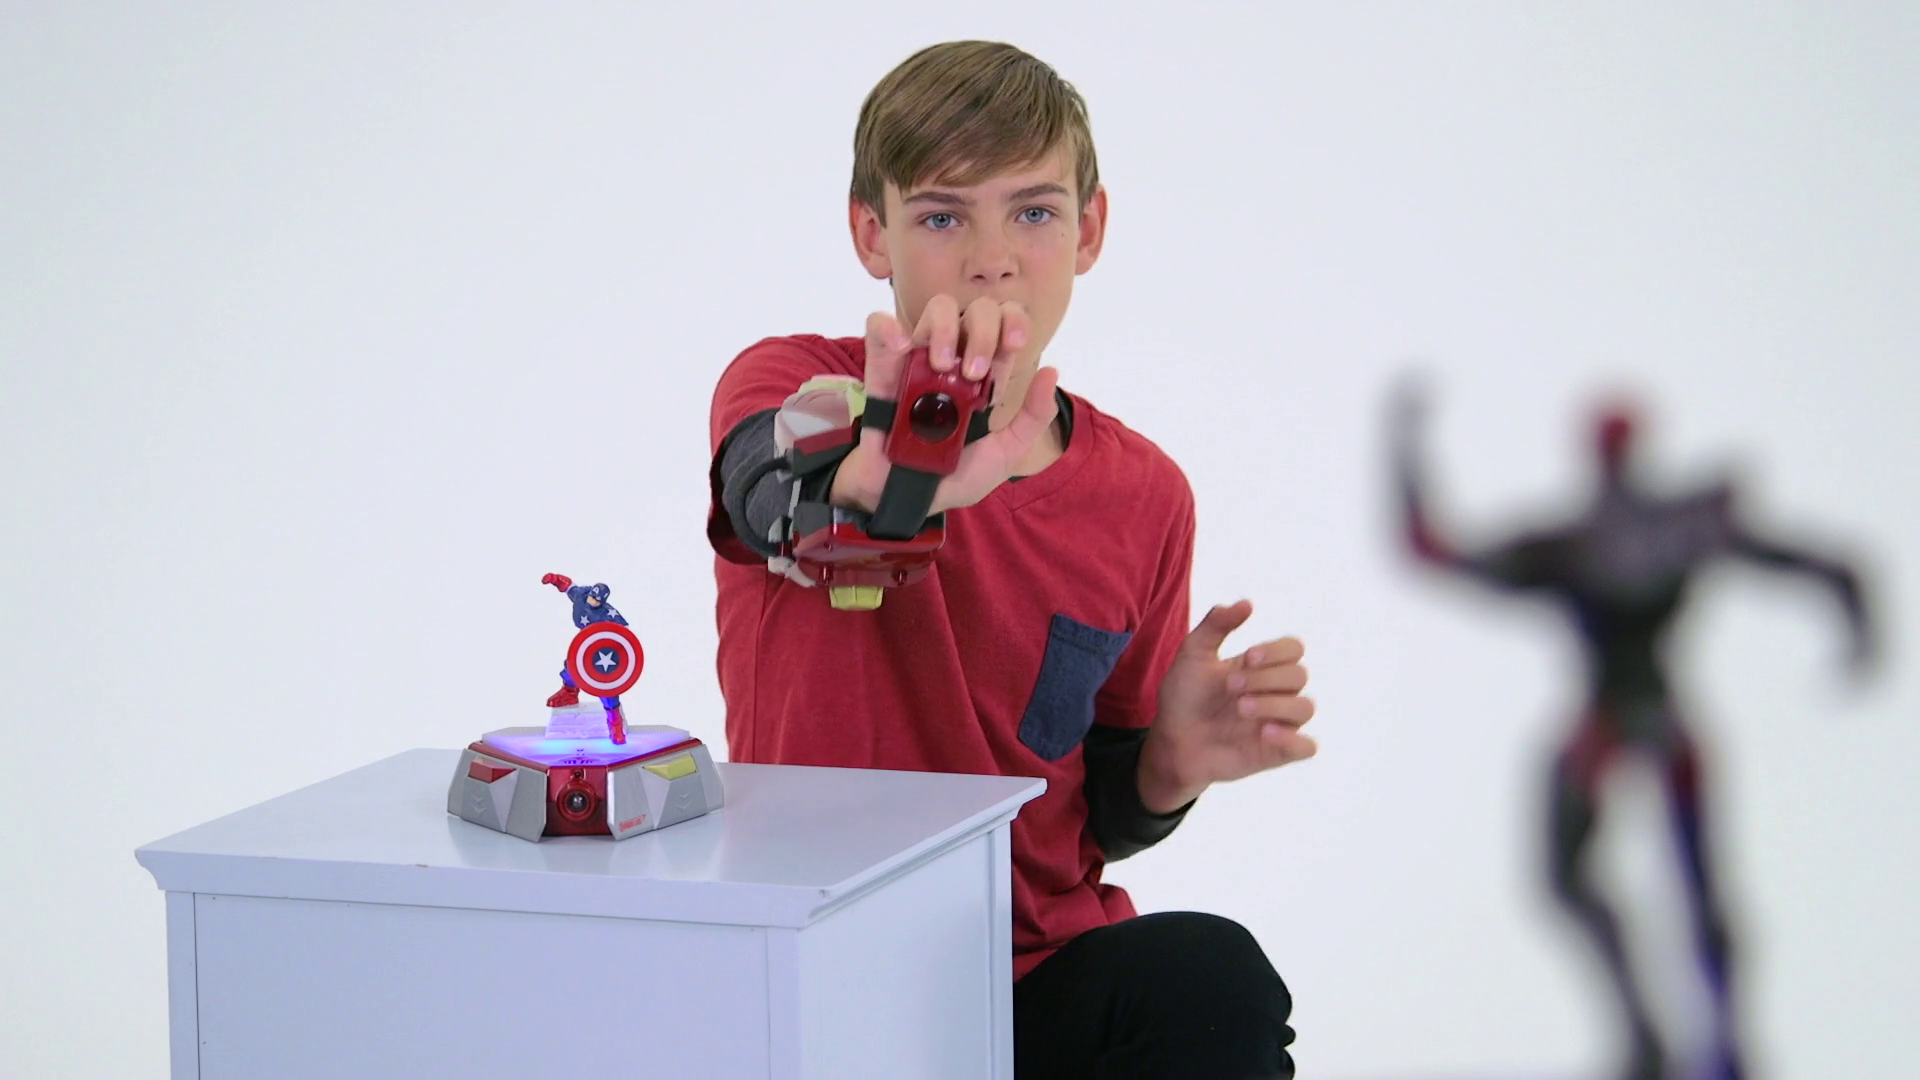 The Navigation Dial: Locations, Missions, and Settings - Playmation Instructional Video